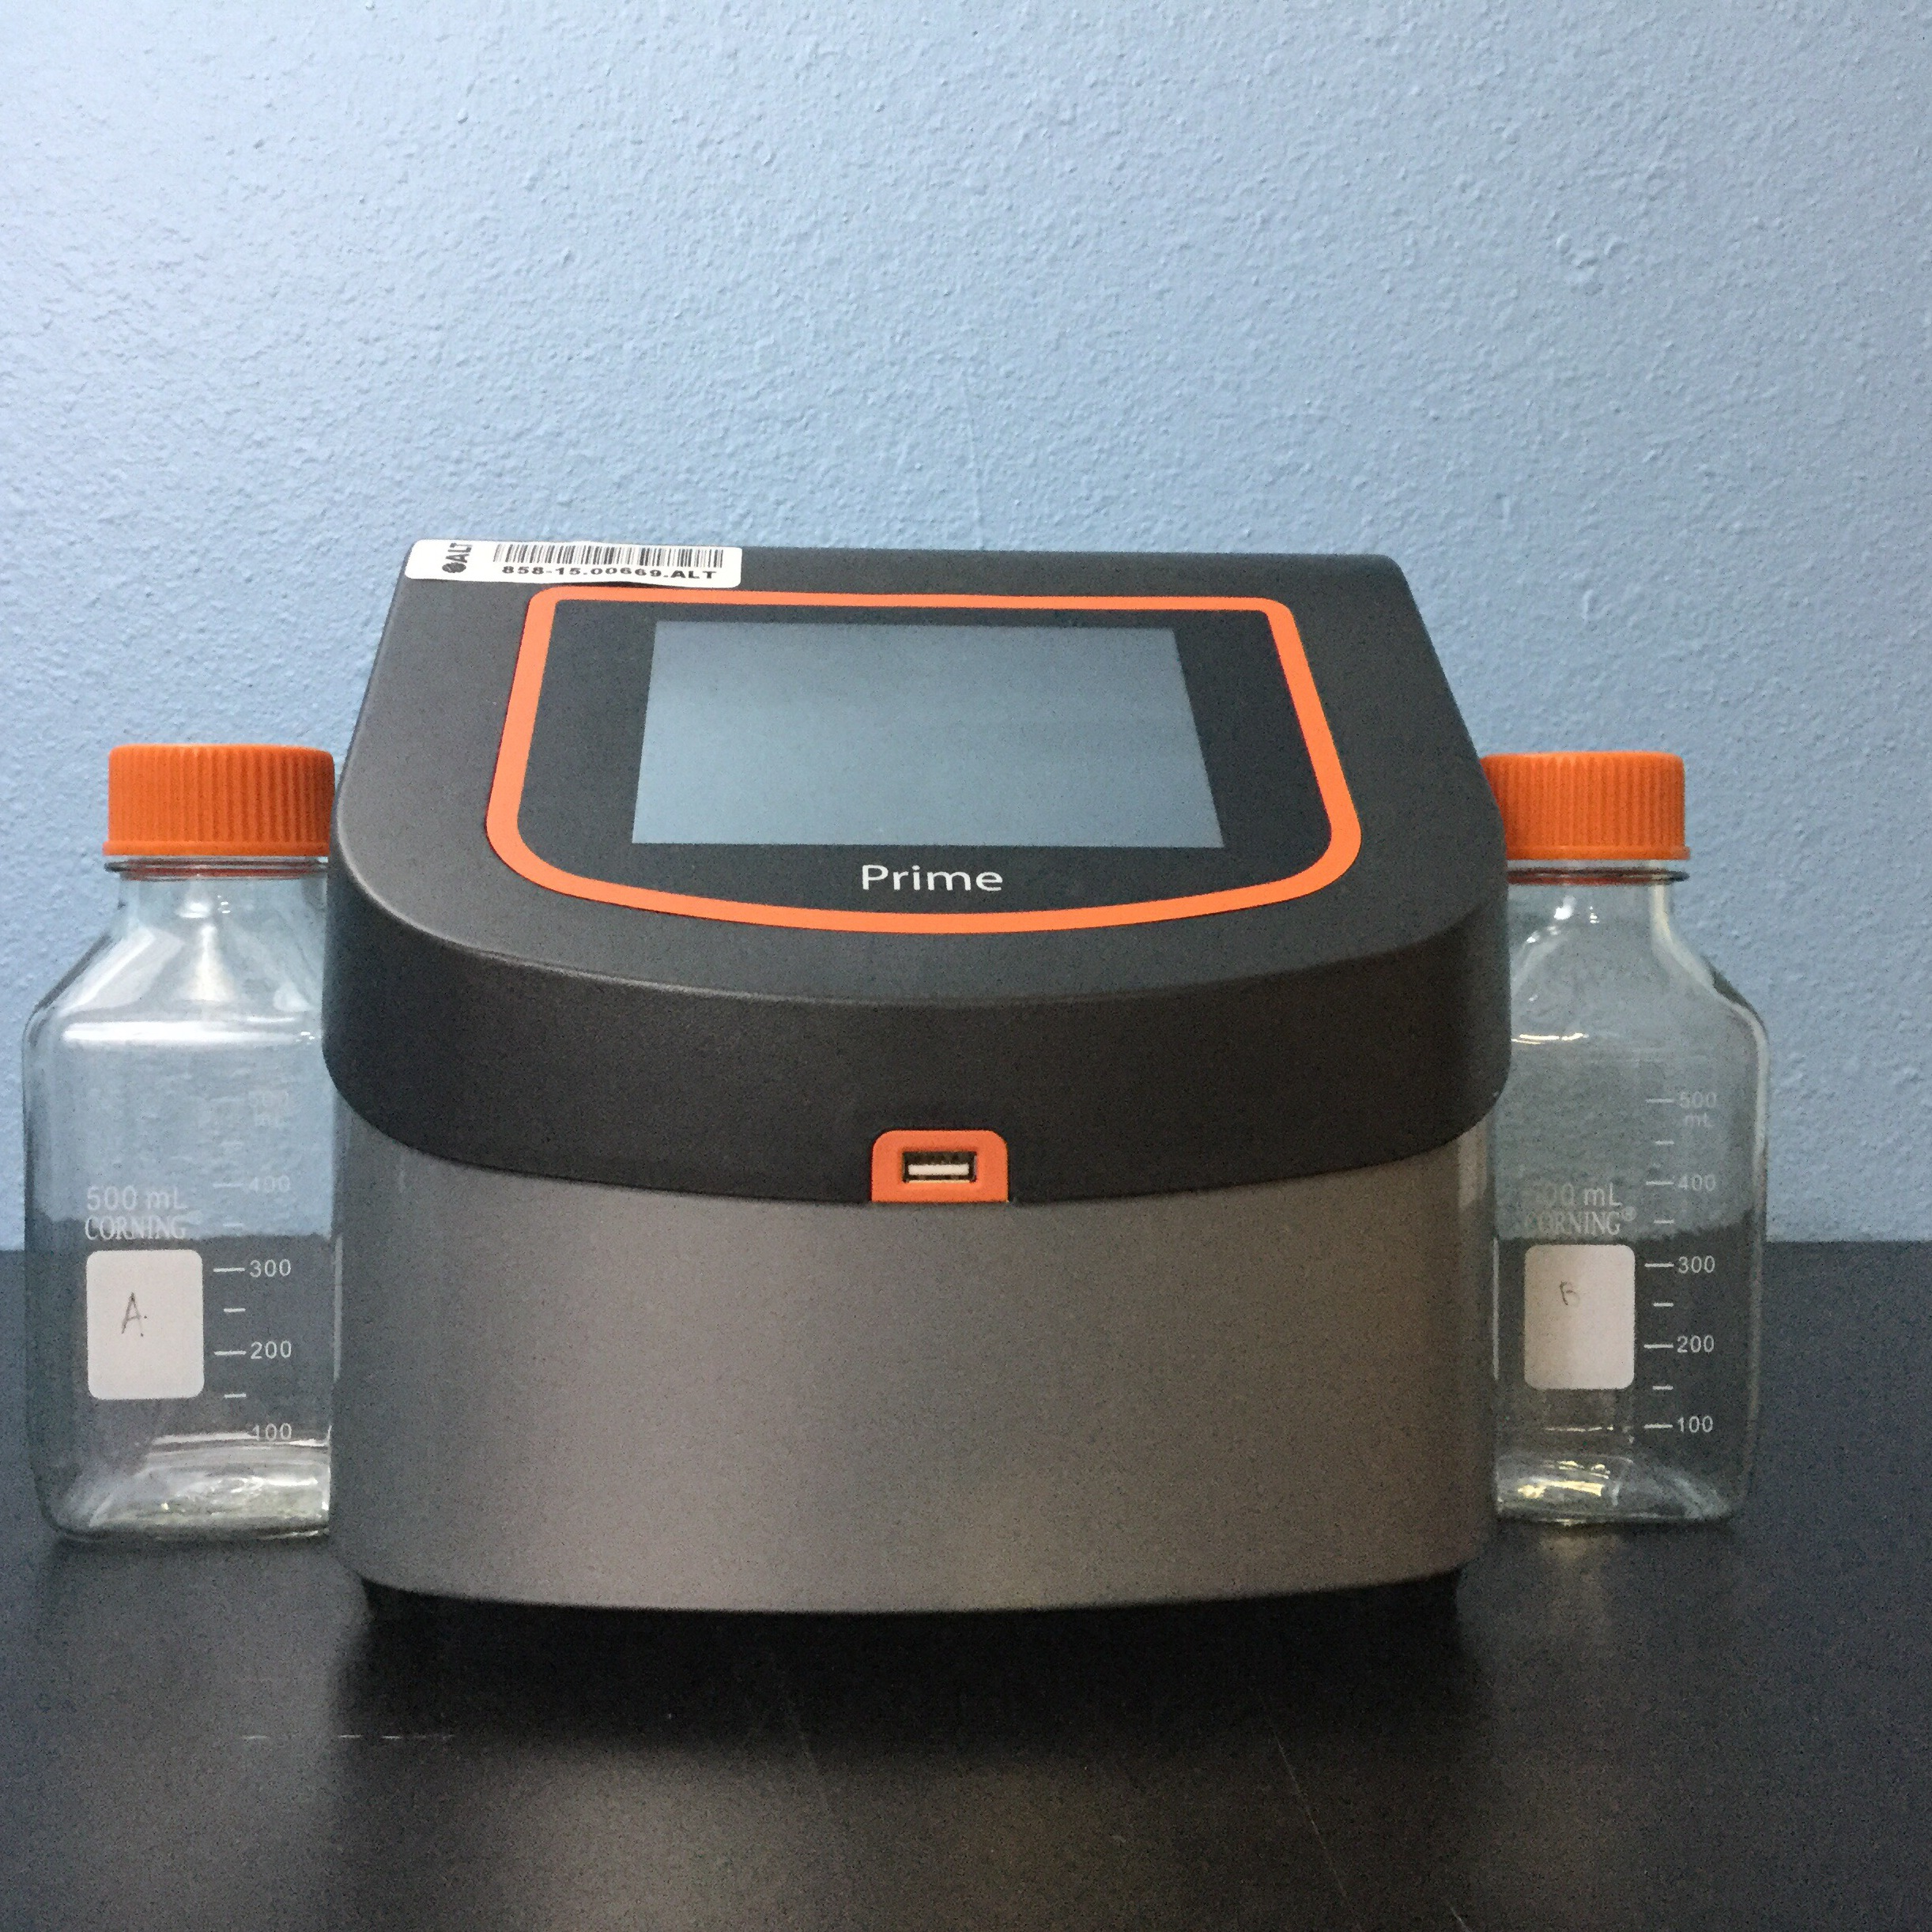 Techne Prime Thermal Cycler Model #5PRIMEG/02 Image